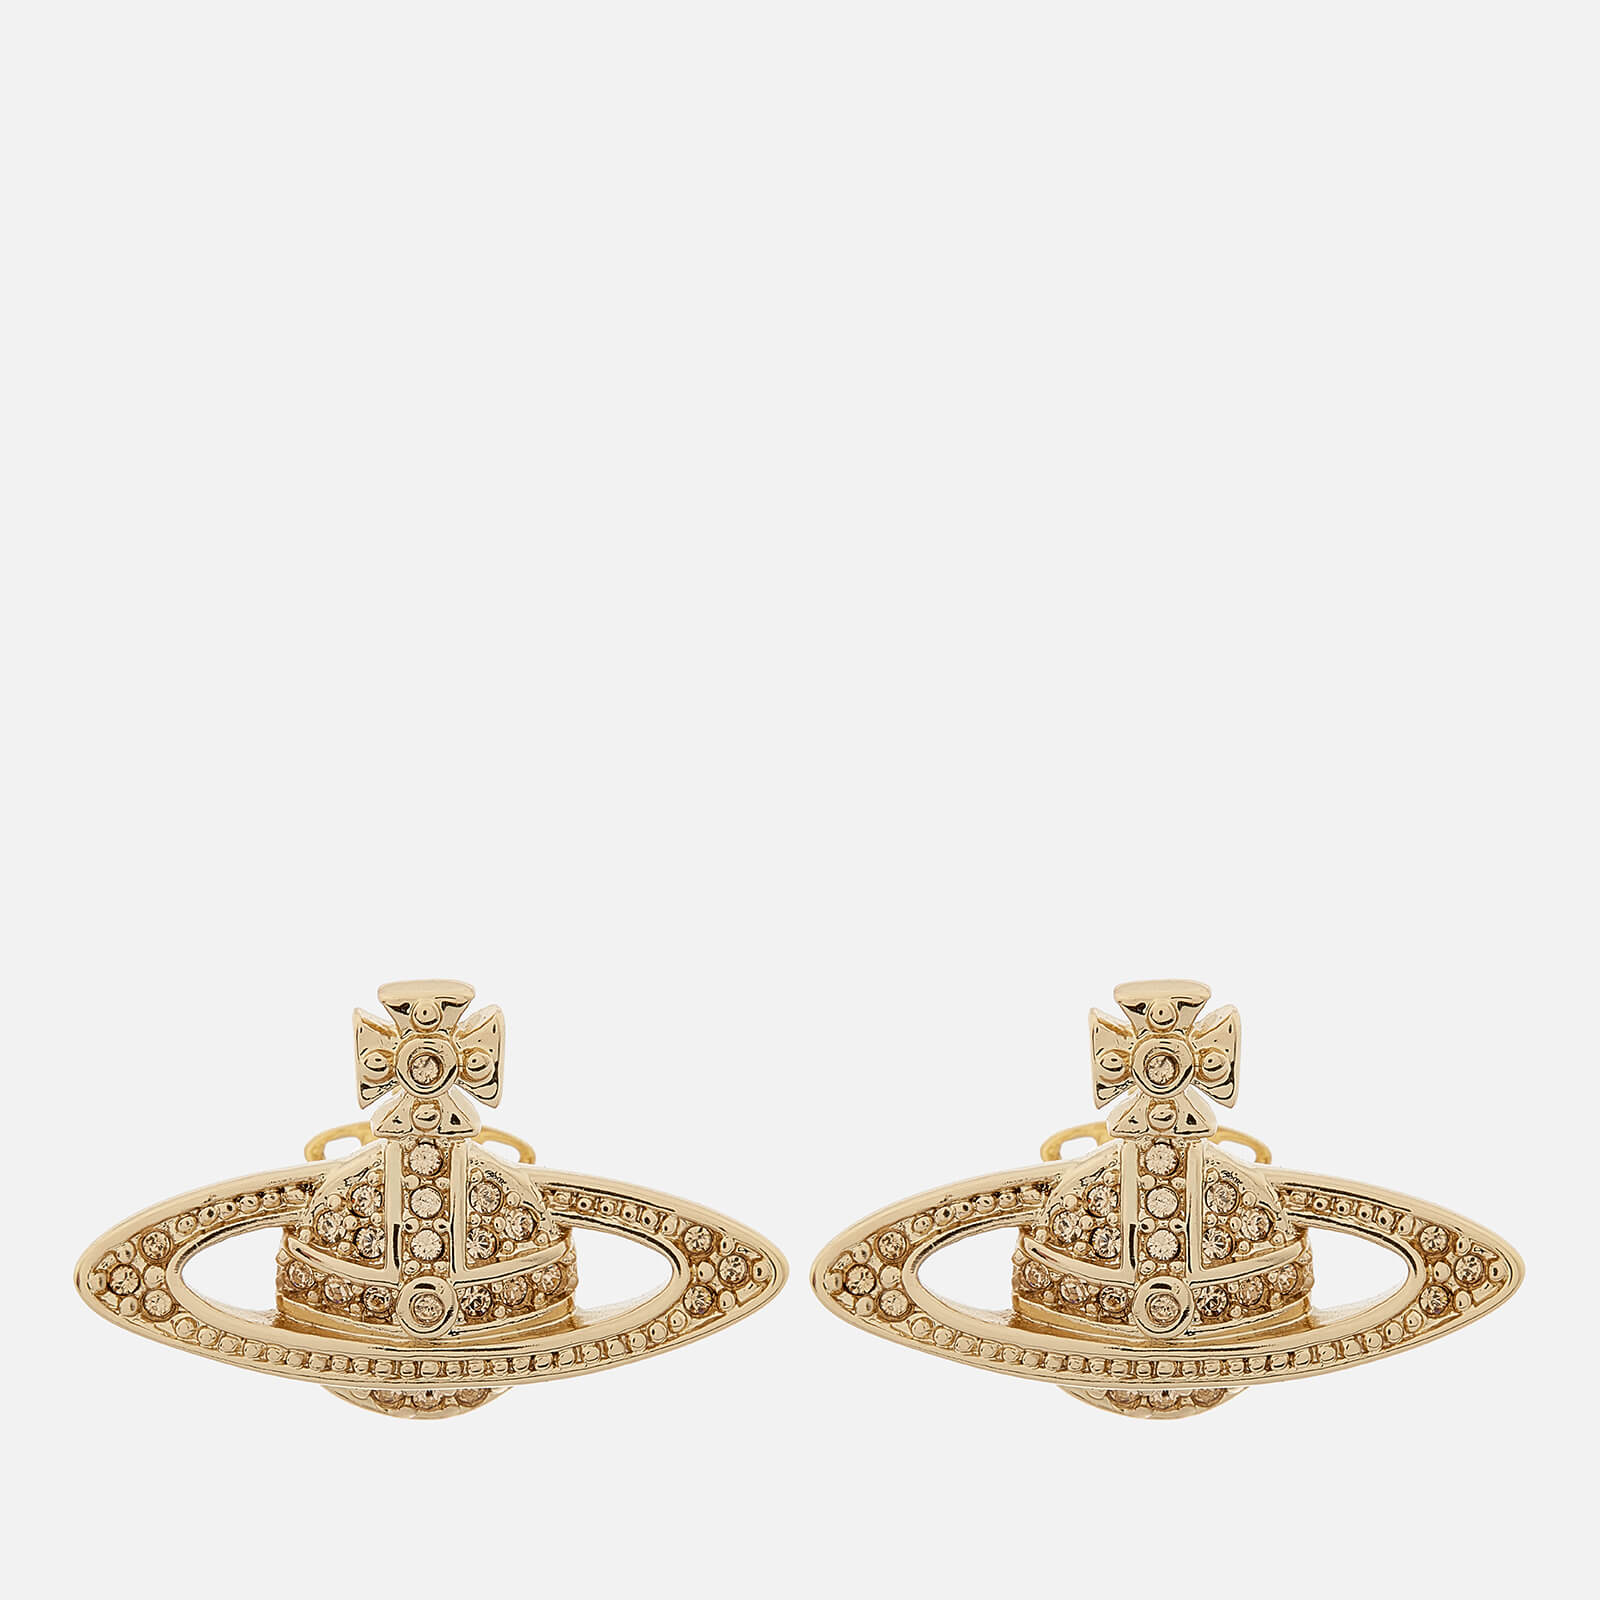 f4254641caa Vivienne Westwood Women's Mini Bas Relief Earrings - Gold - Free UK  Delivery over £50